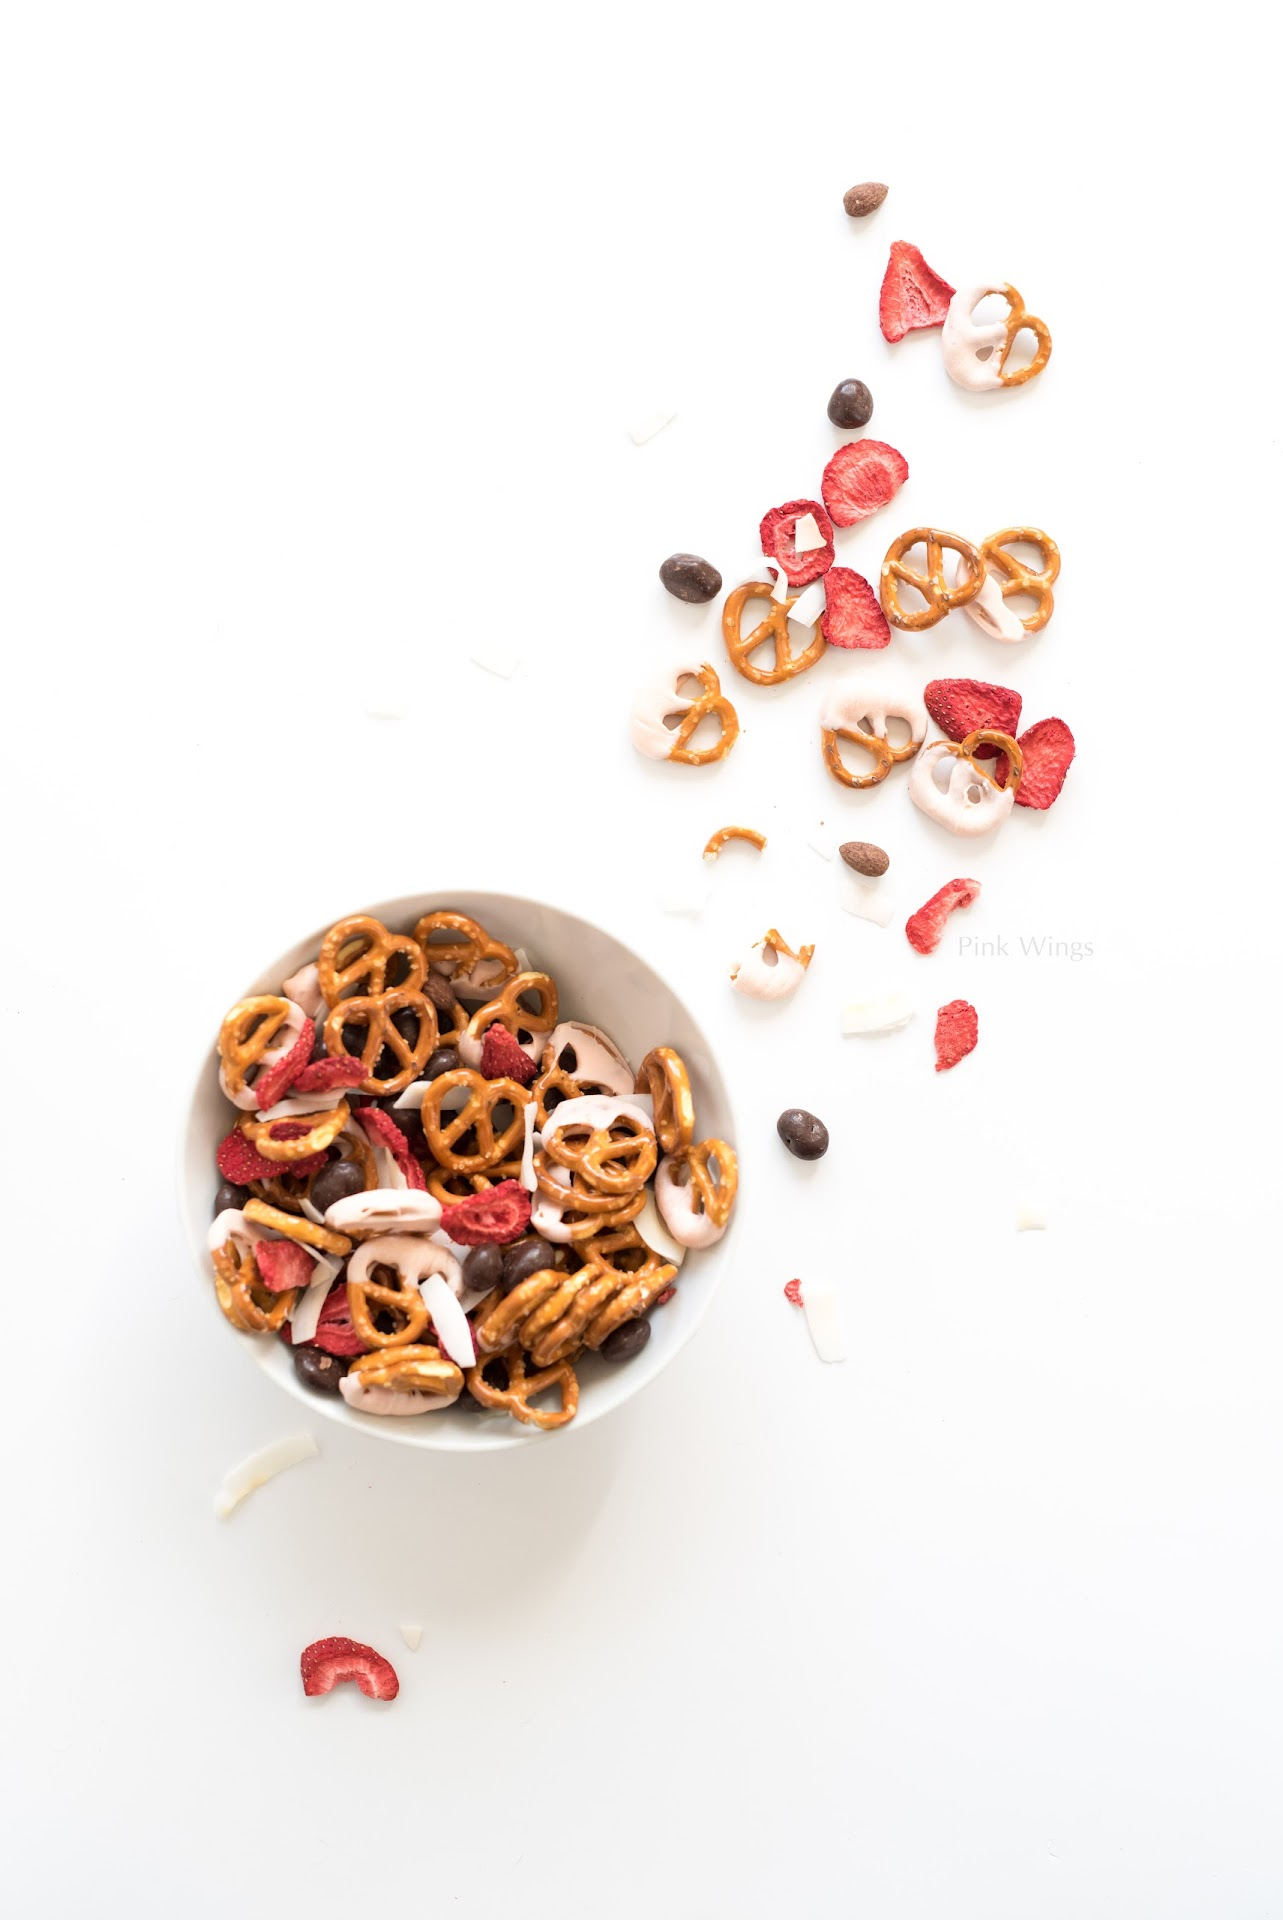 strawberry chex mix, christmas snack mix, snack mix recipes, party food ideas for adults, finger foods, party appetizers, birthday party food, kids party food, party food recipes, sweet chex mix recipe, healthy snack ideas, party snack mix, easy party food